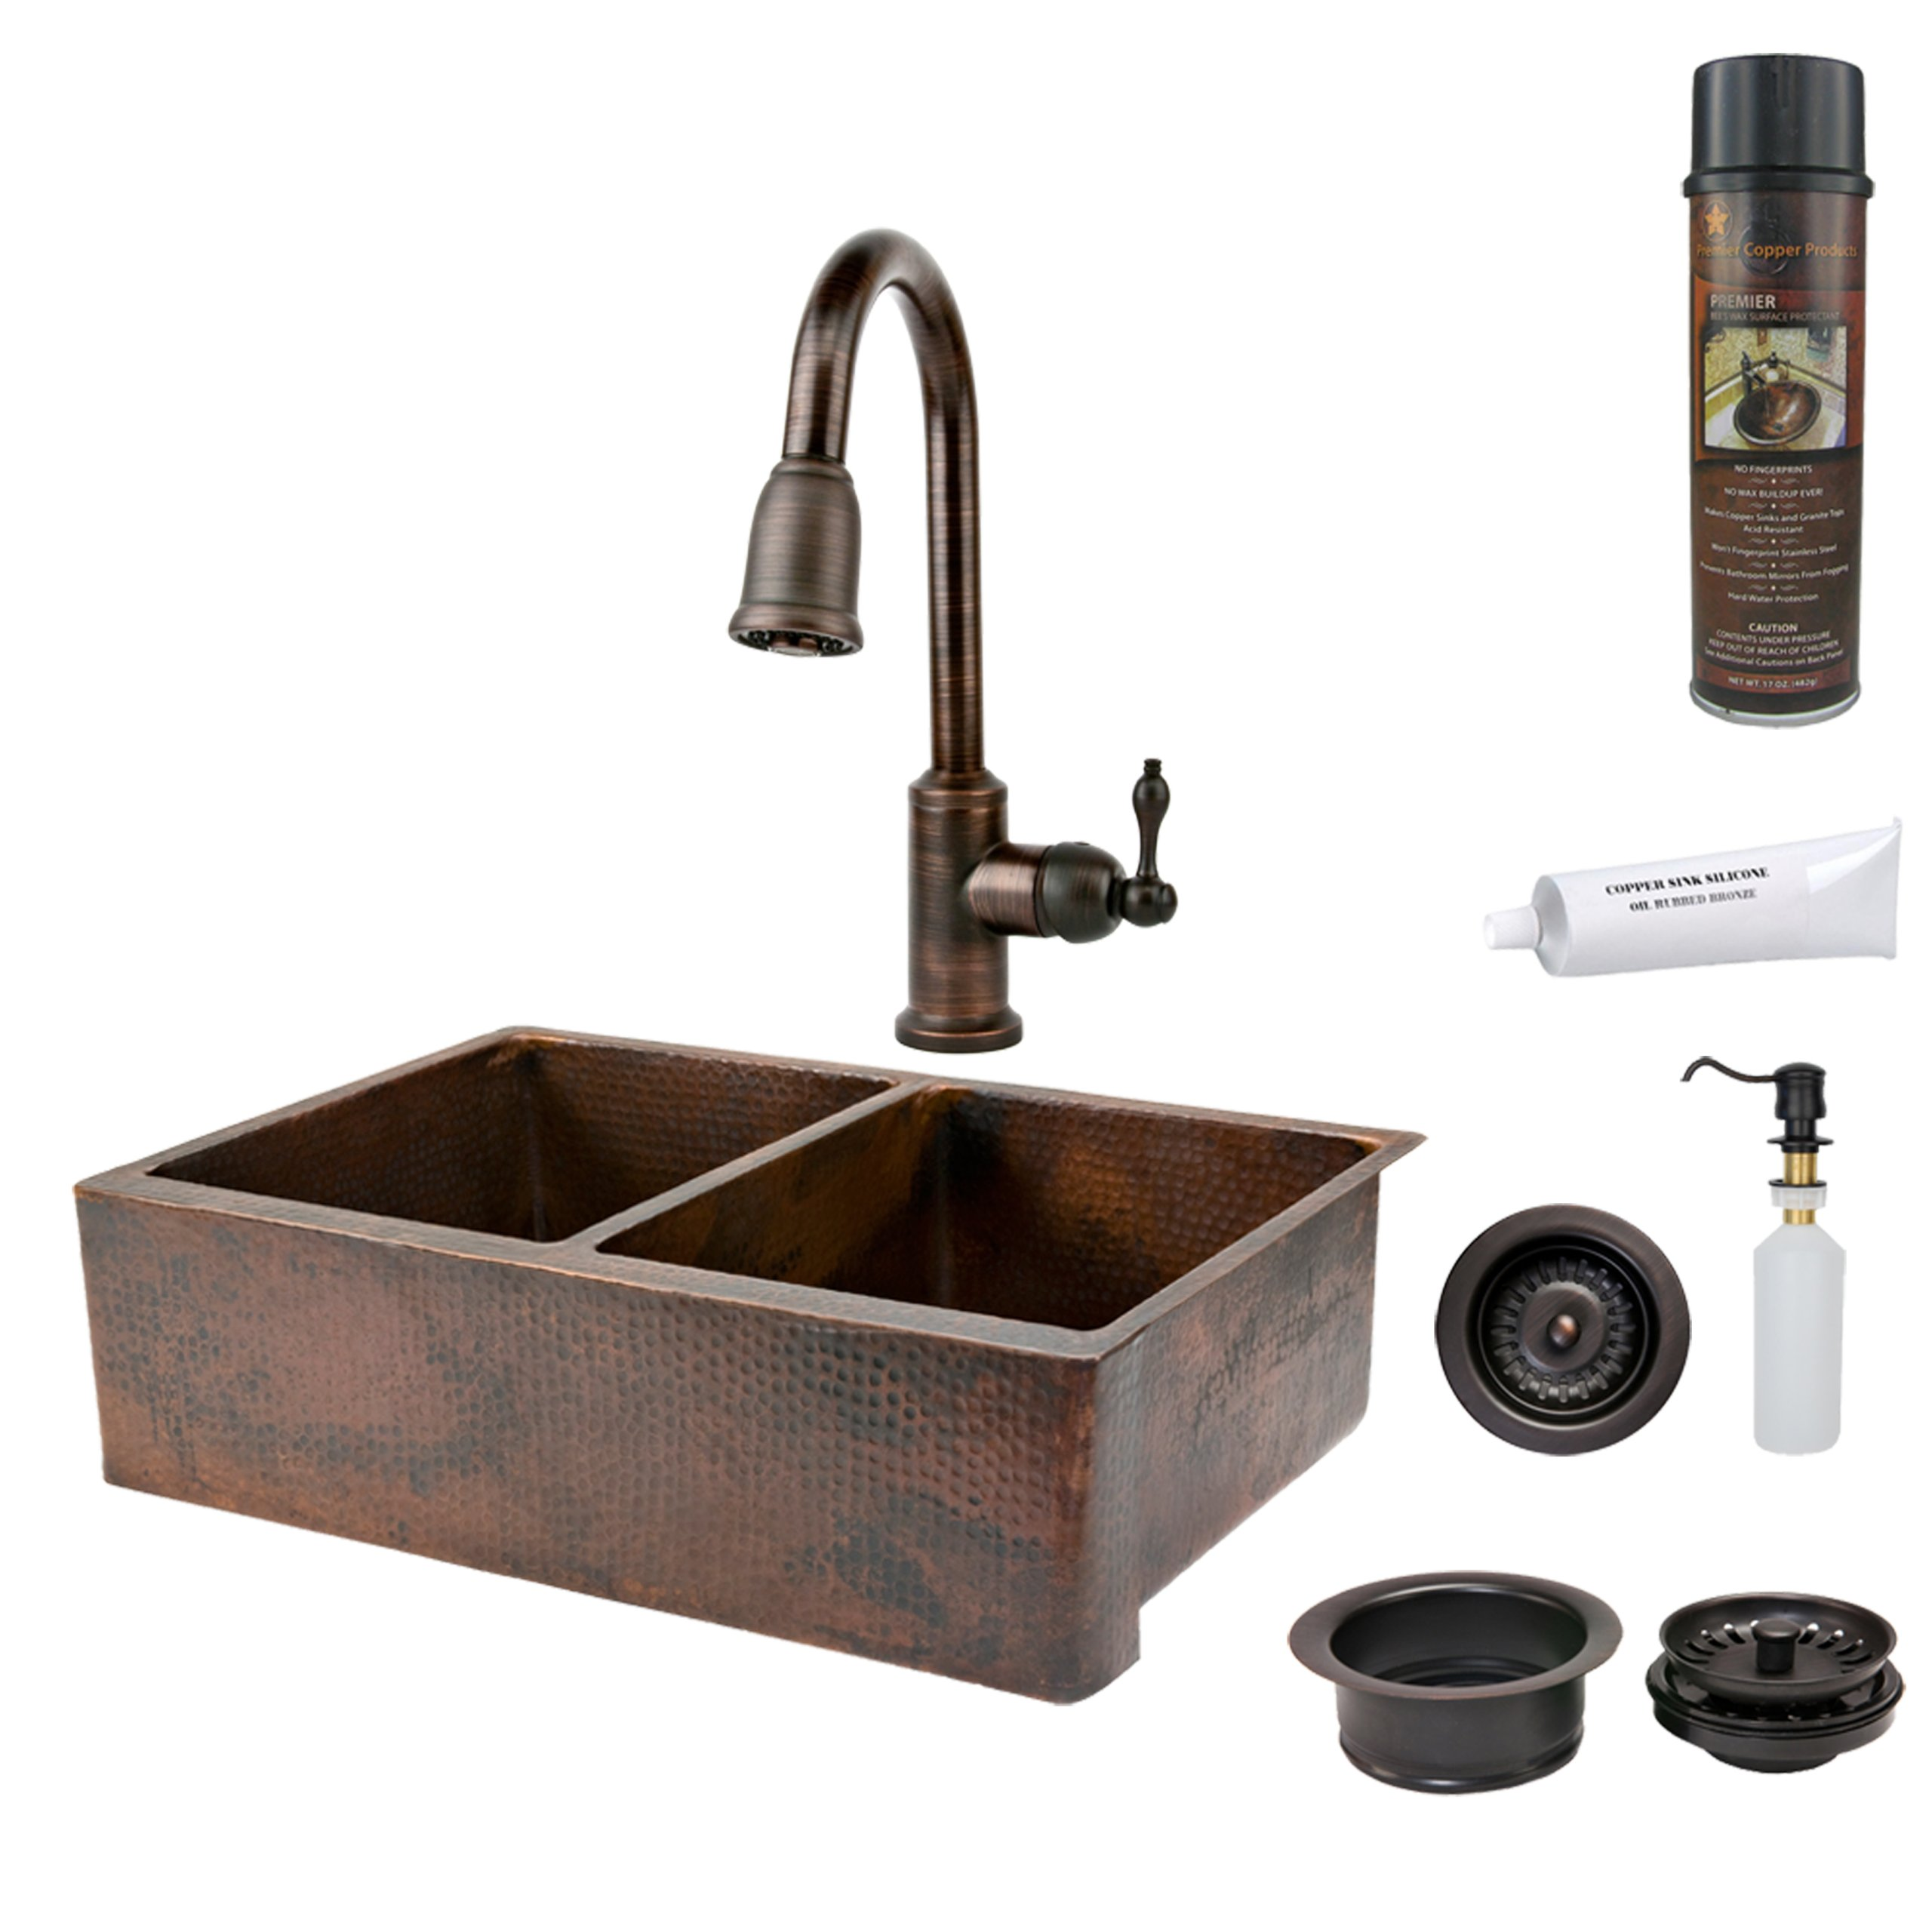 Premier Copper Products KSP2_KA50DB33229 33-Inch Hammered Copper Kitchen Apron 50/50 Double Basin Sink with Pull Down Faucet, Oil Rubbed Bronze